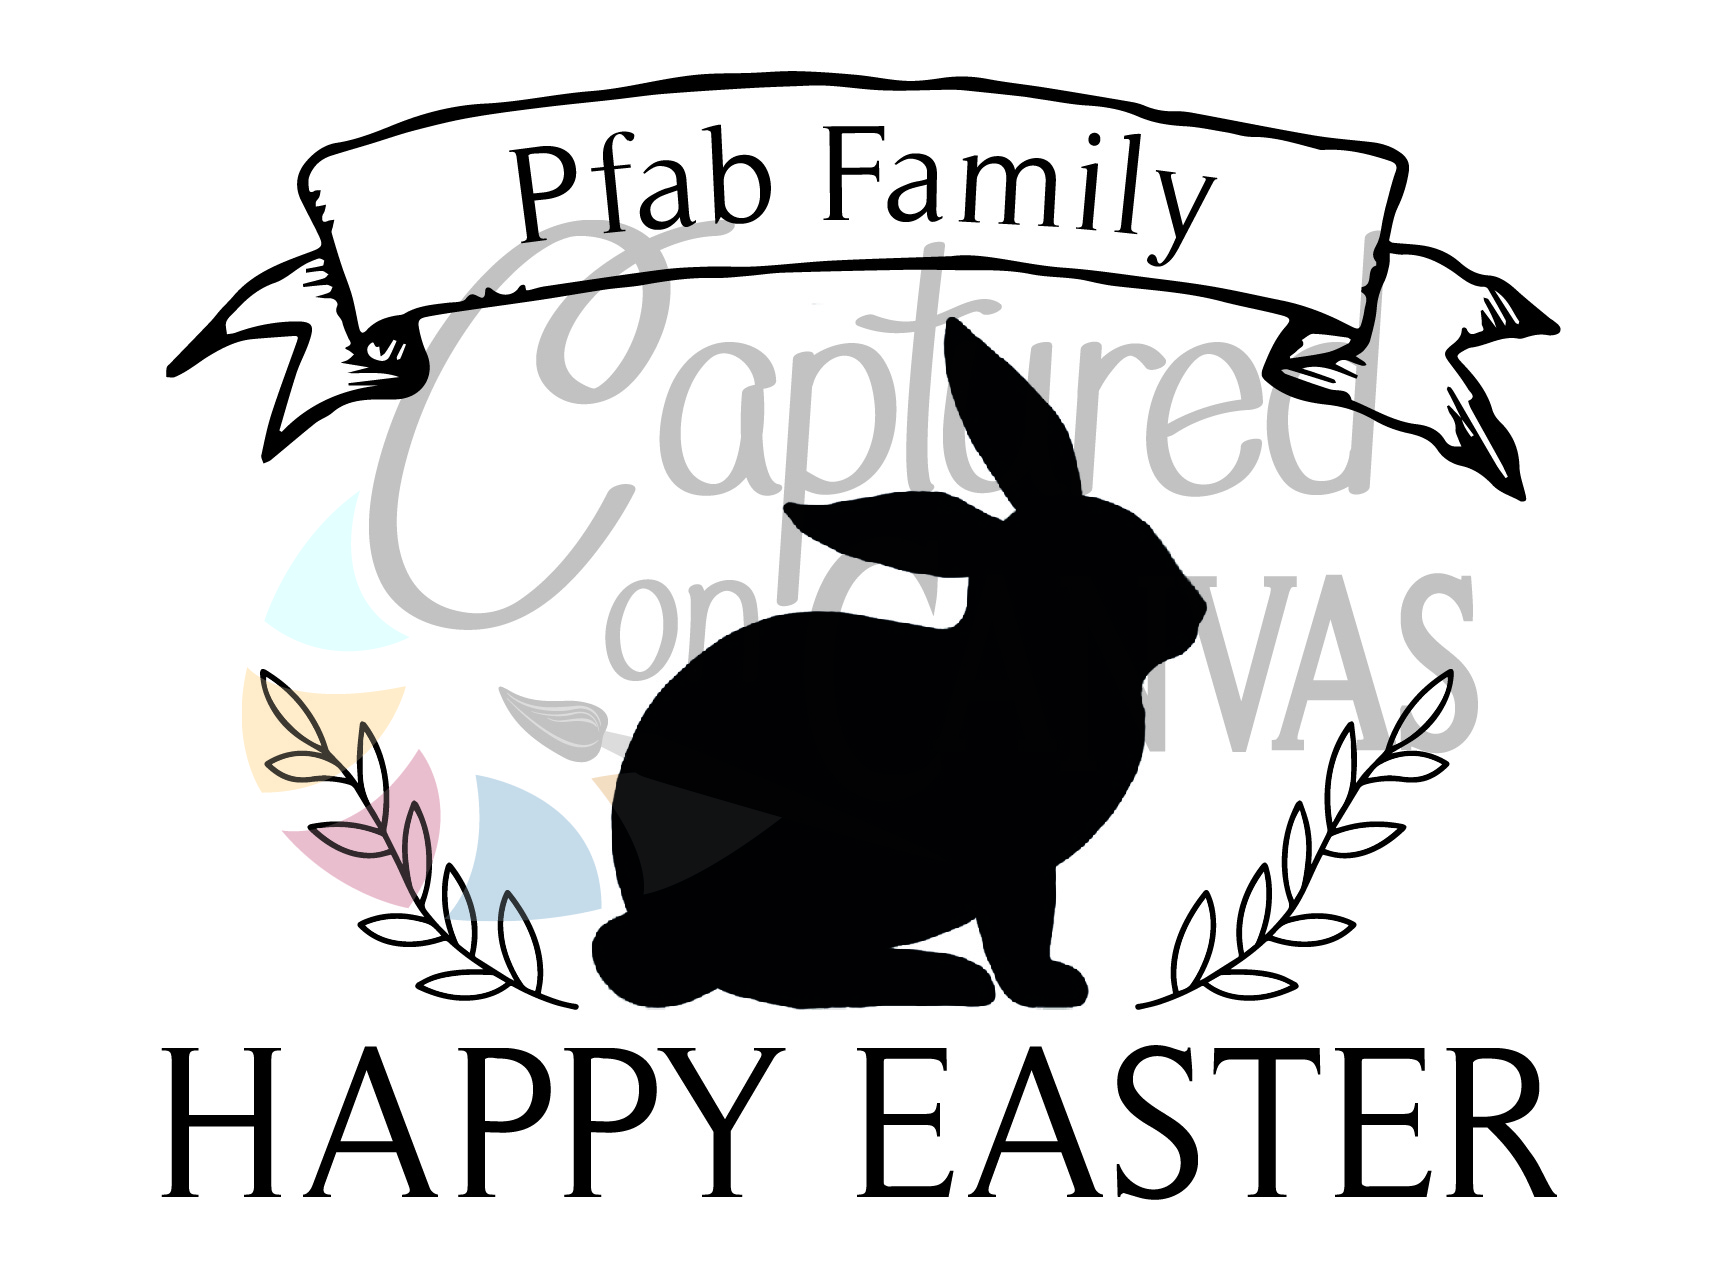 Happy Easter Family